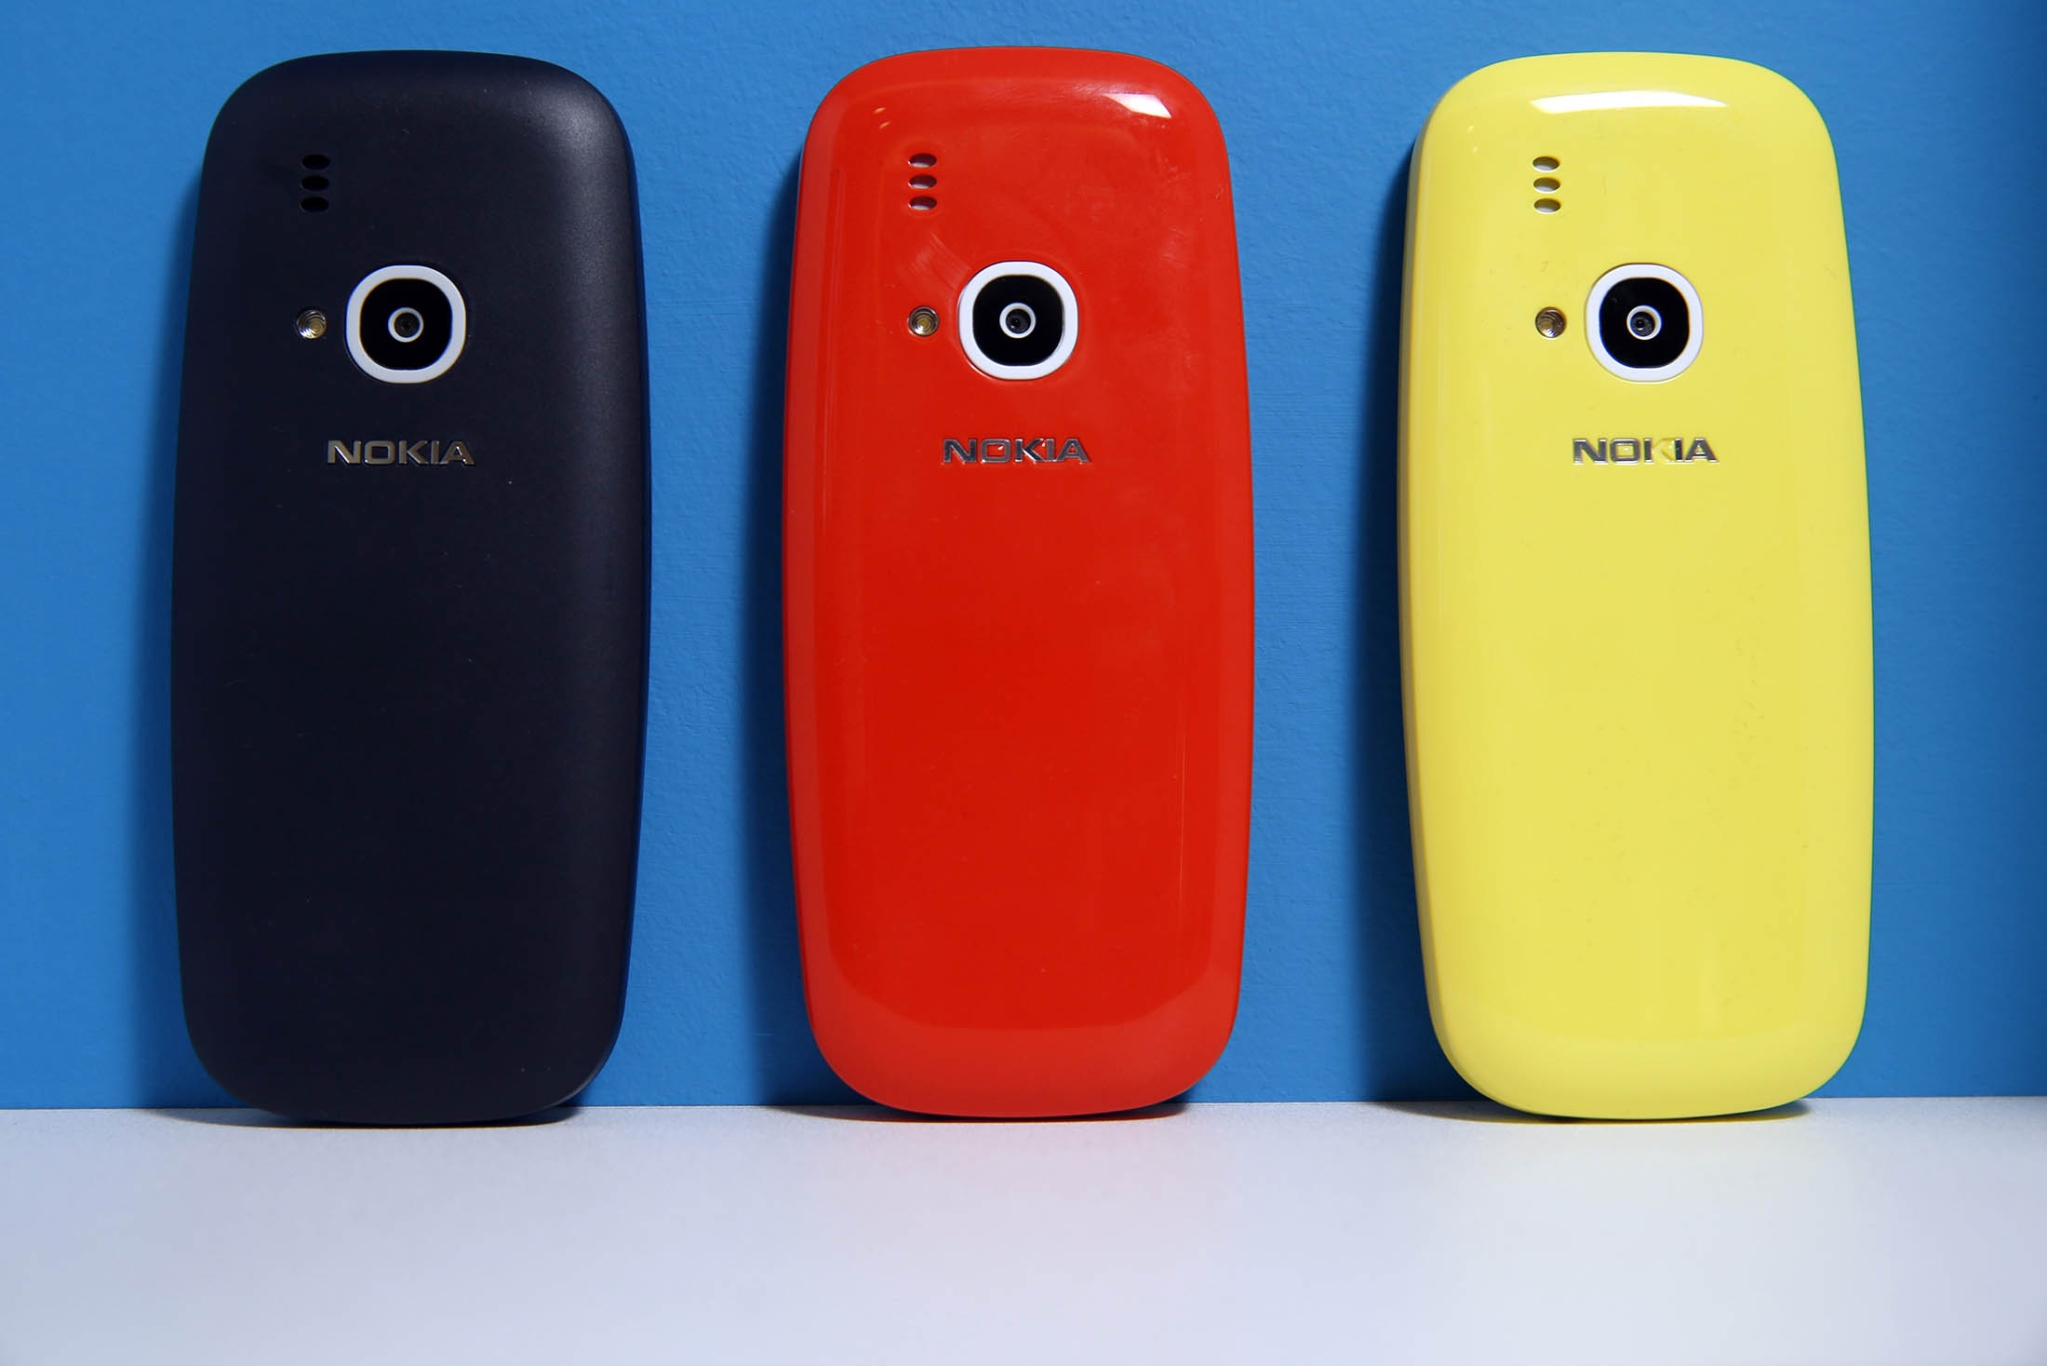 Nokia 3310 makes a comeback is it time for phones to go retro nokia 3310 makes a comeback is it time for phones to go retro bloomberg quint biocorpaavc Choice Image